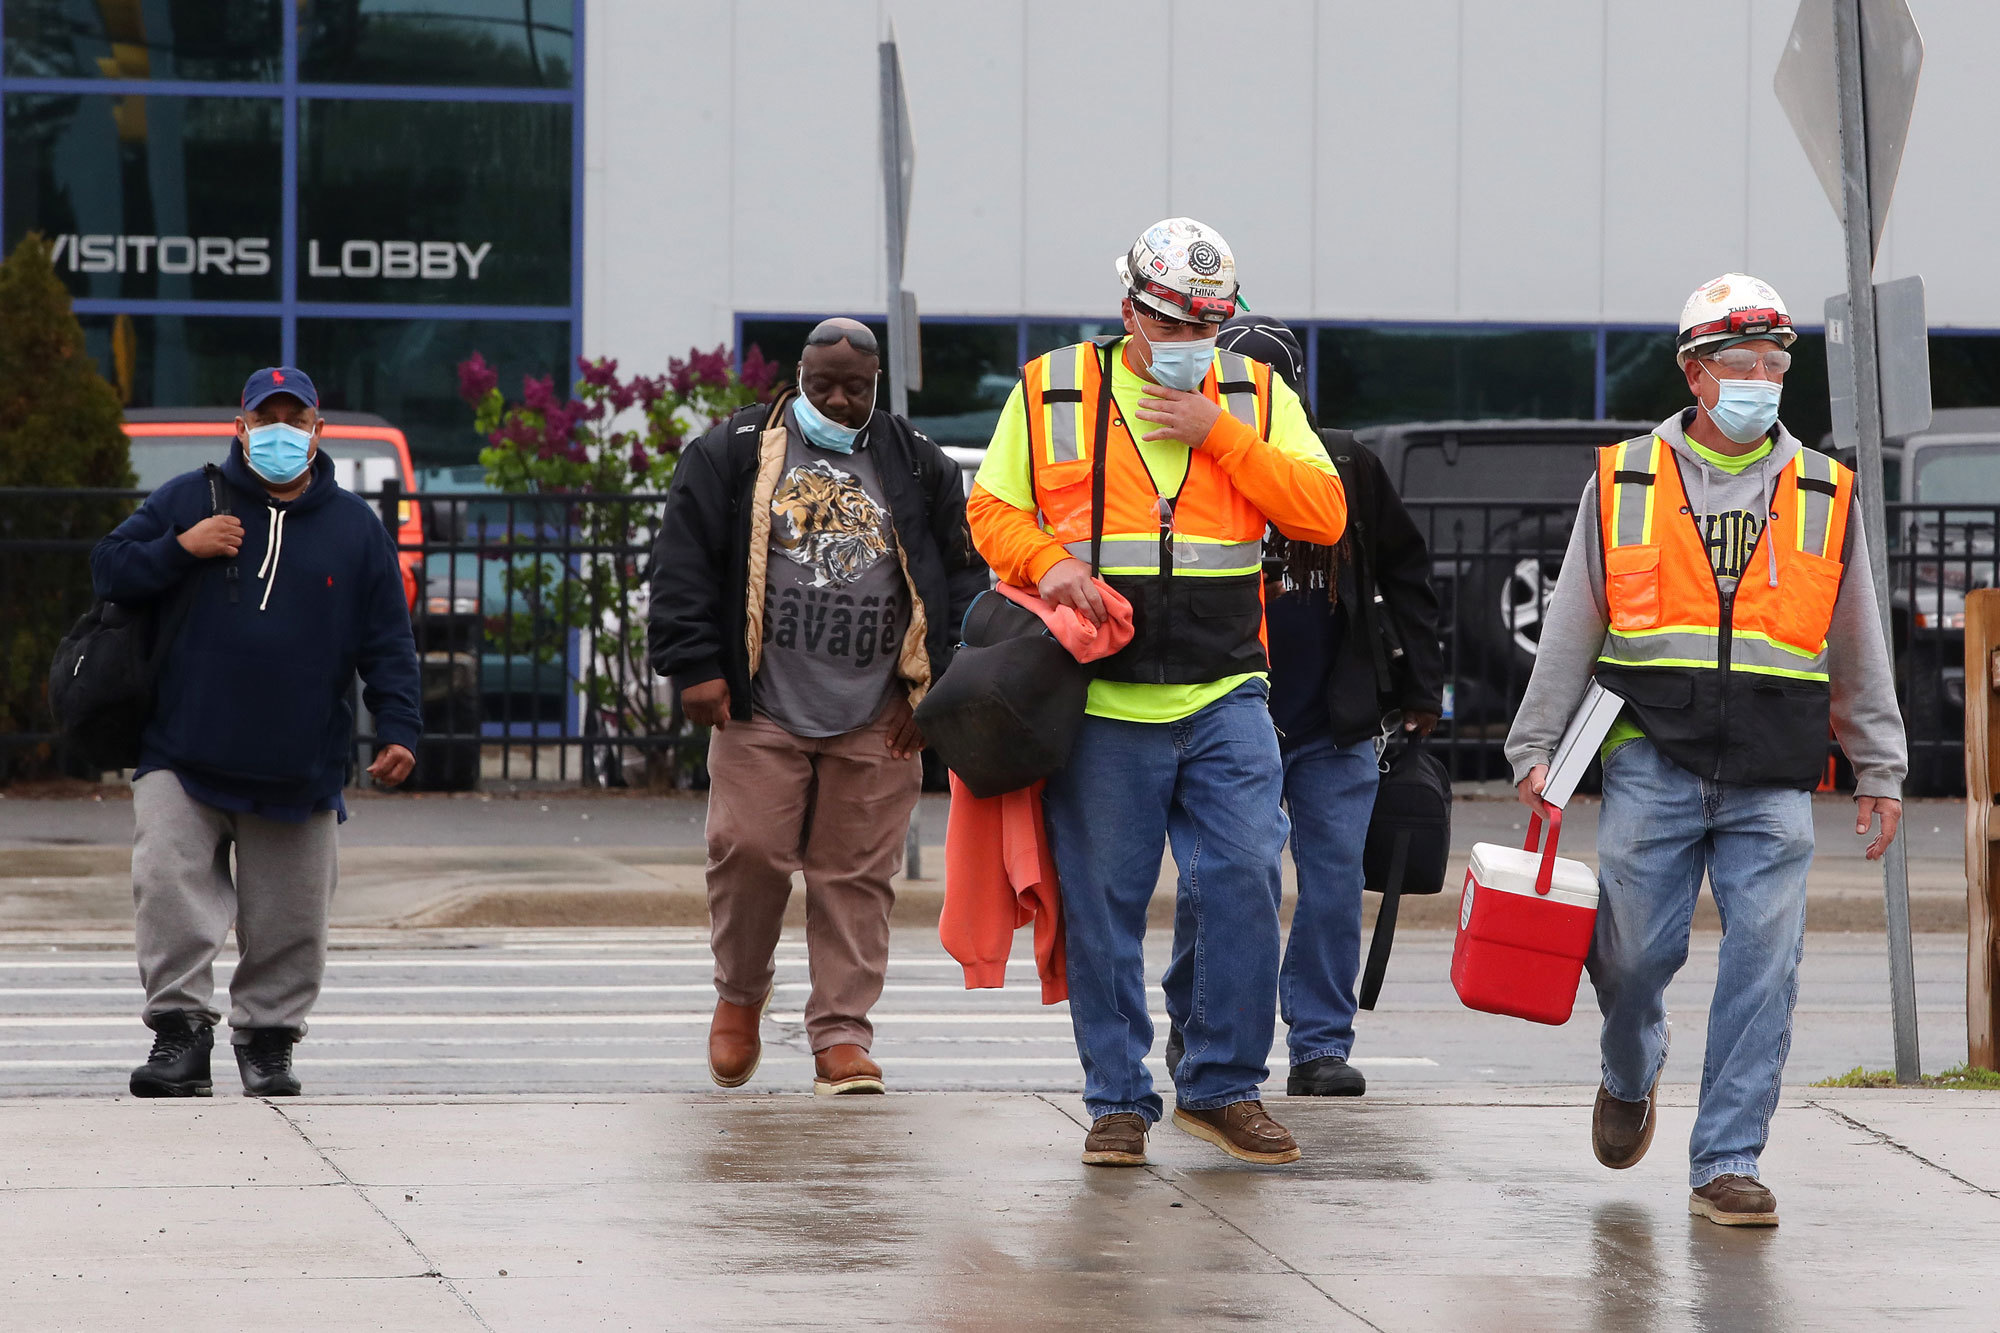 Workers at the Fiat Chrysler truck plant in Warren, Mich., finish their shift. (Gregory Shamus/Getty Images)